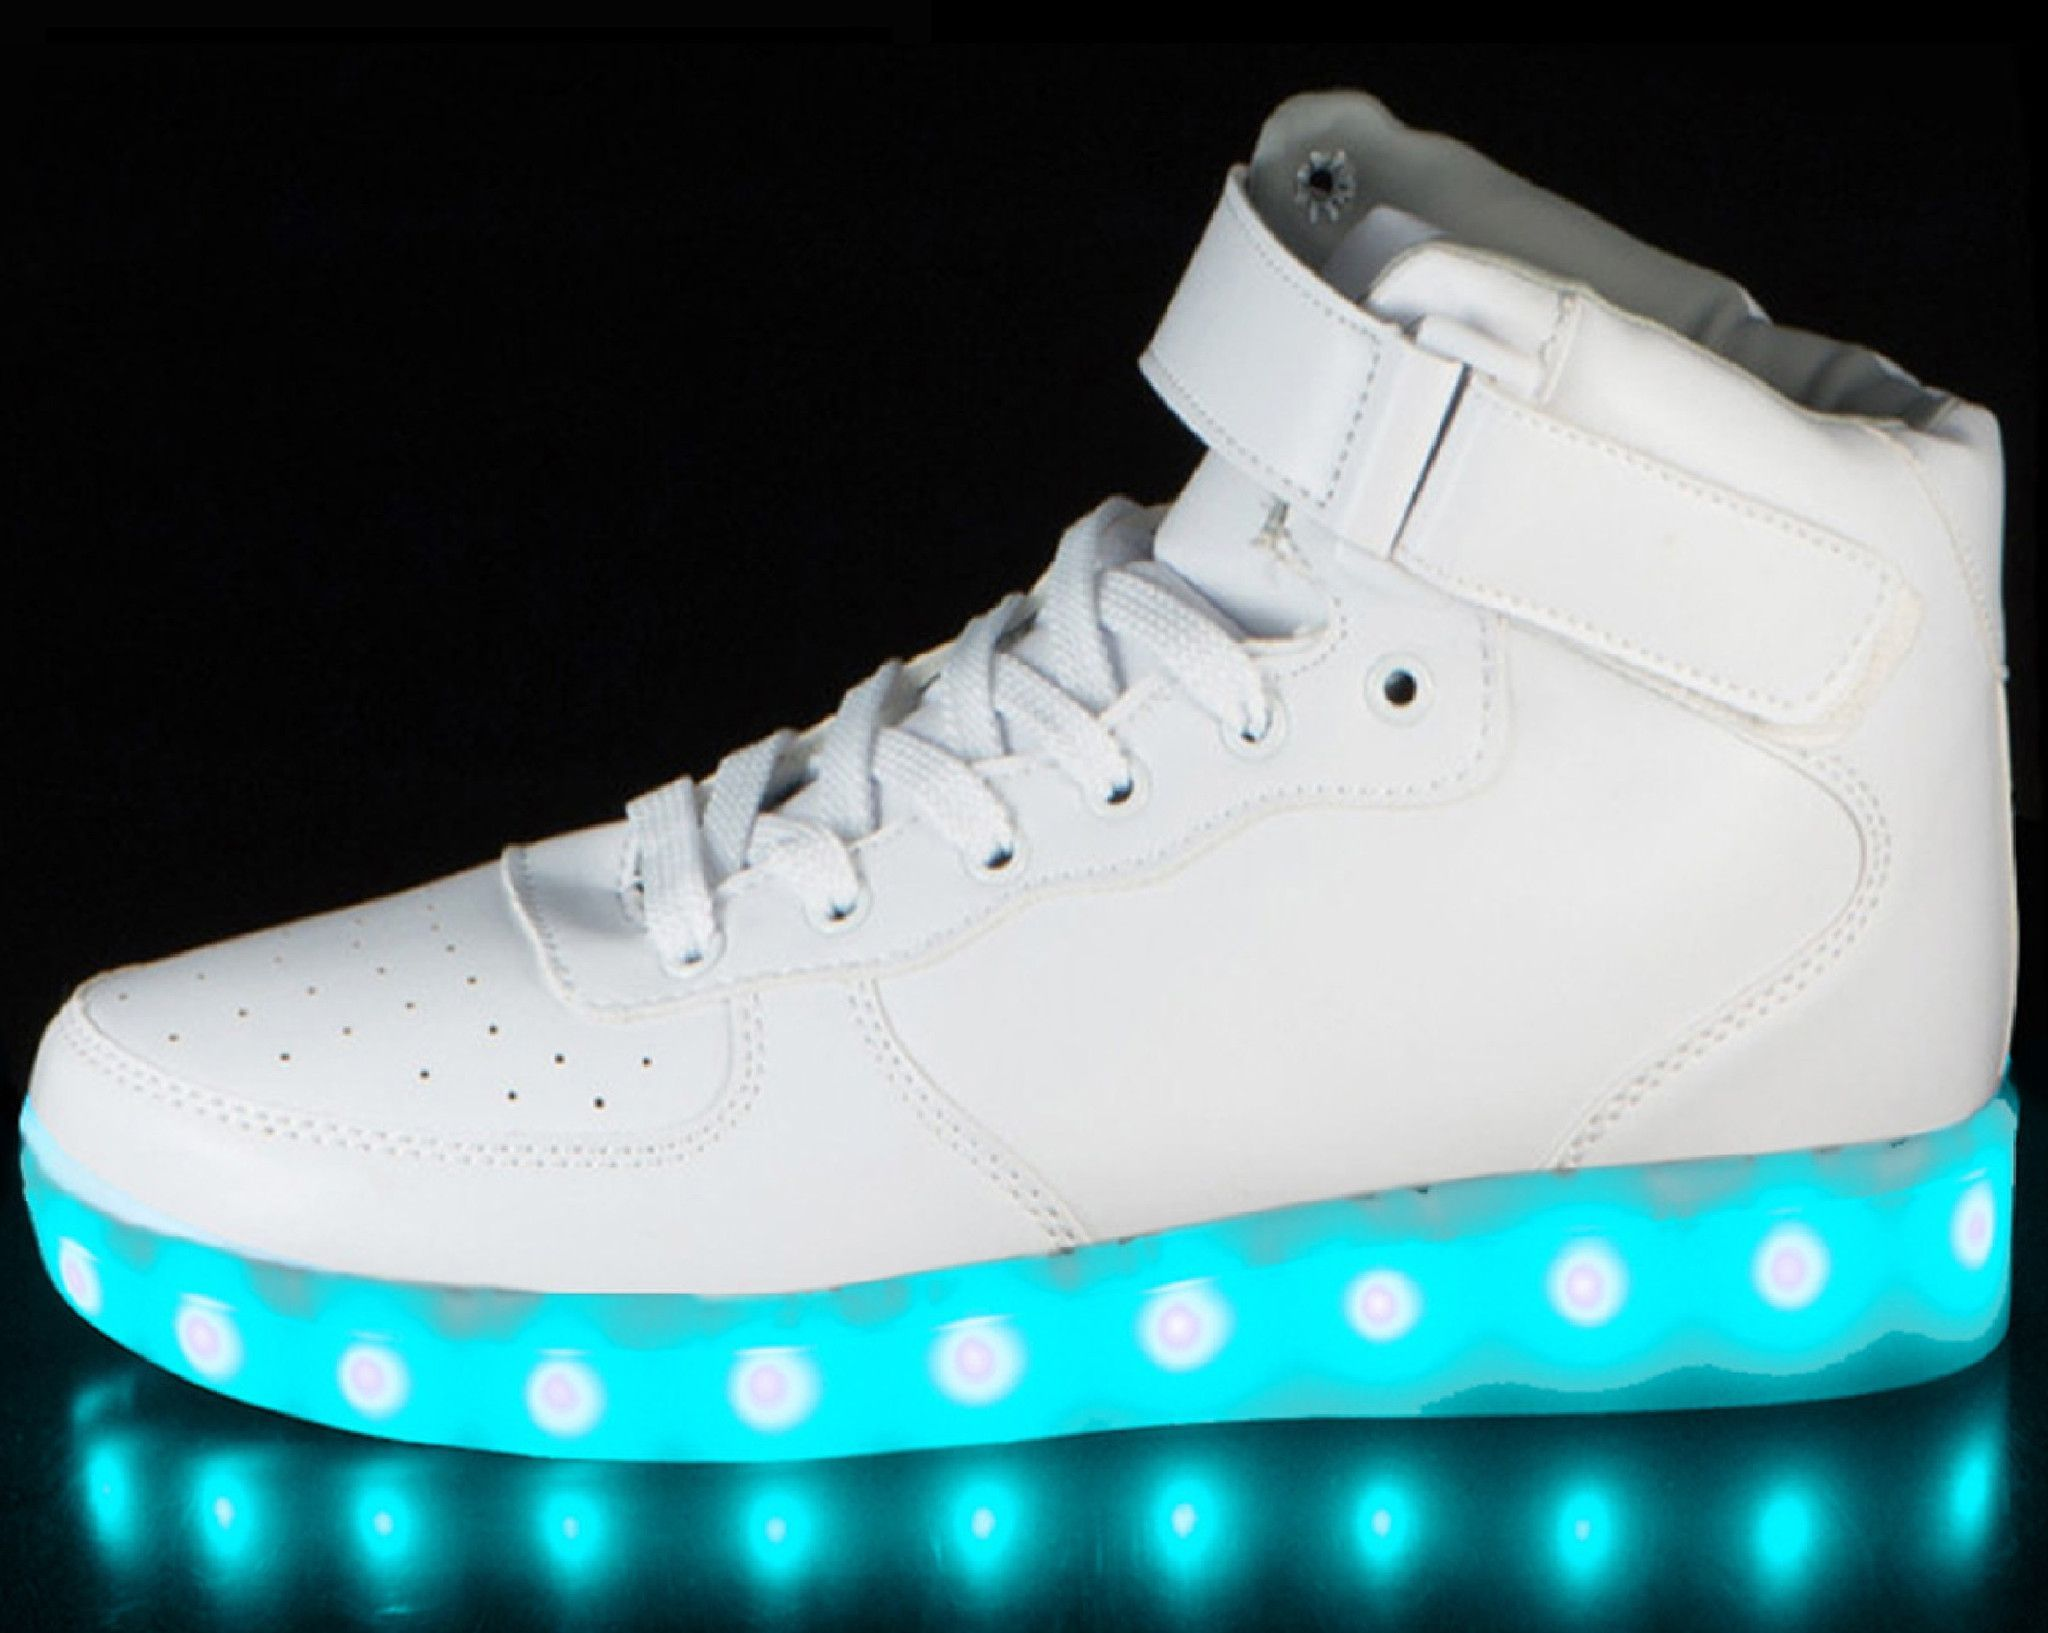 separation shoes e4e72 a3bac Choose a pair of led light up shoes that fit you best! Enjoy an assortment  of the brightest led colors such as red, yellow, green, blue, purple, aqua,  ...